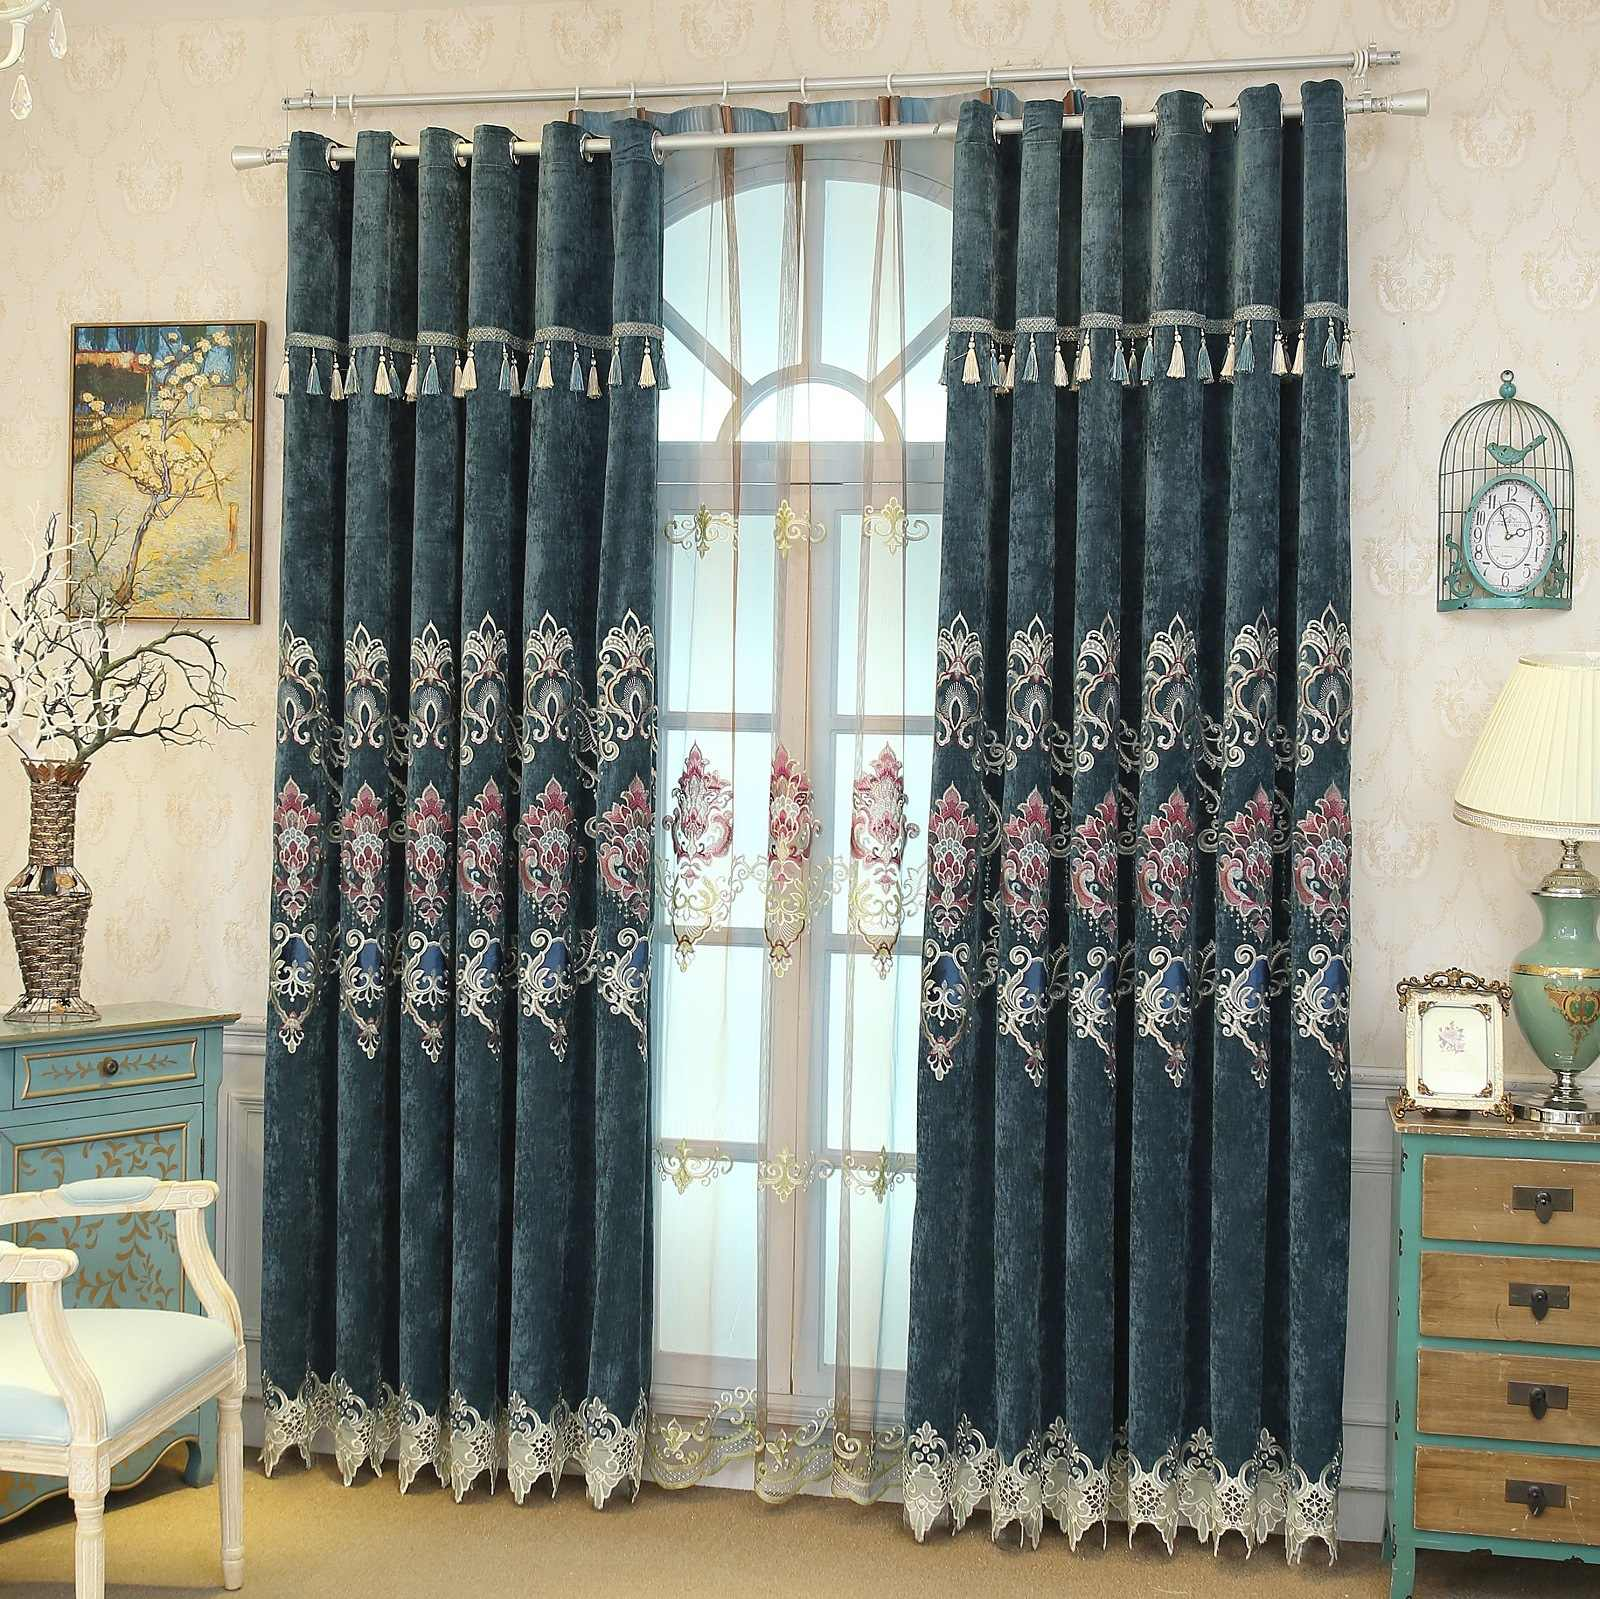 New European Chenille Curtains for Bedroom High-grade Embroidery Fabric Valance Curtains for Living Dining Room Tulle